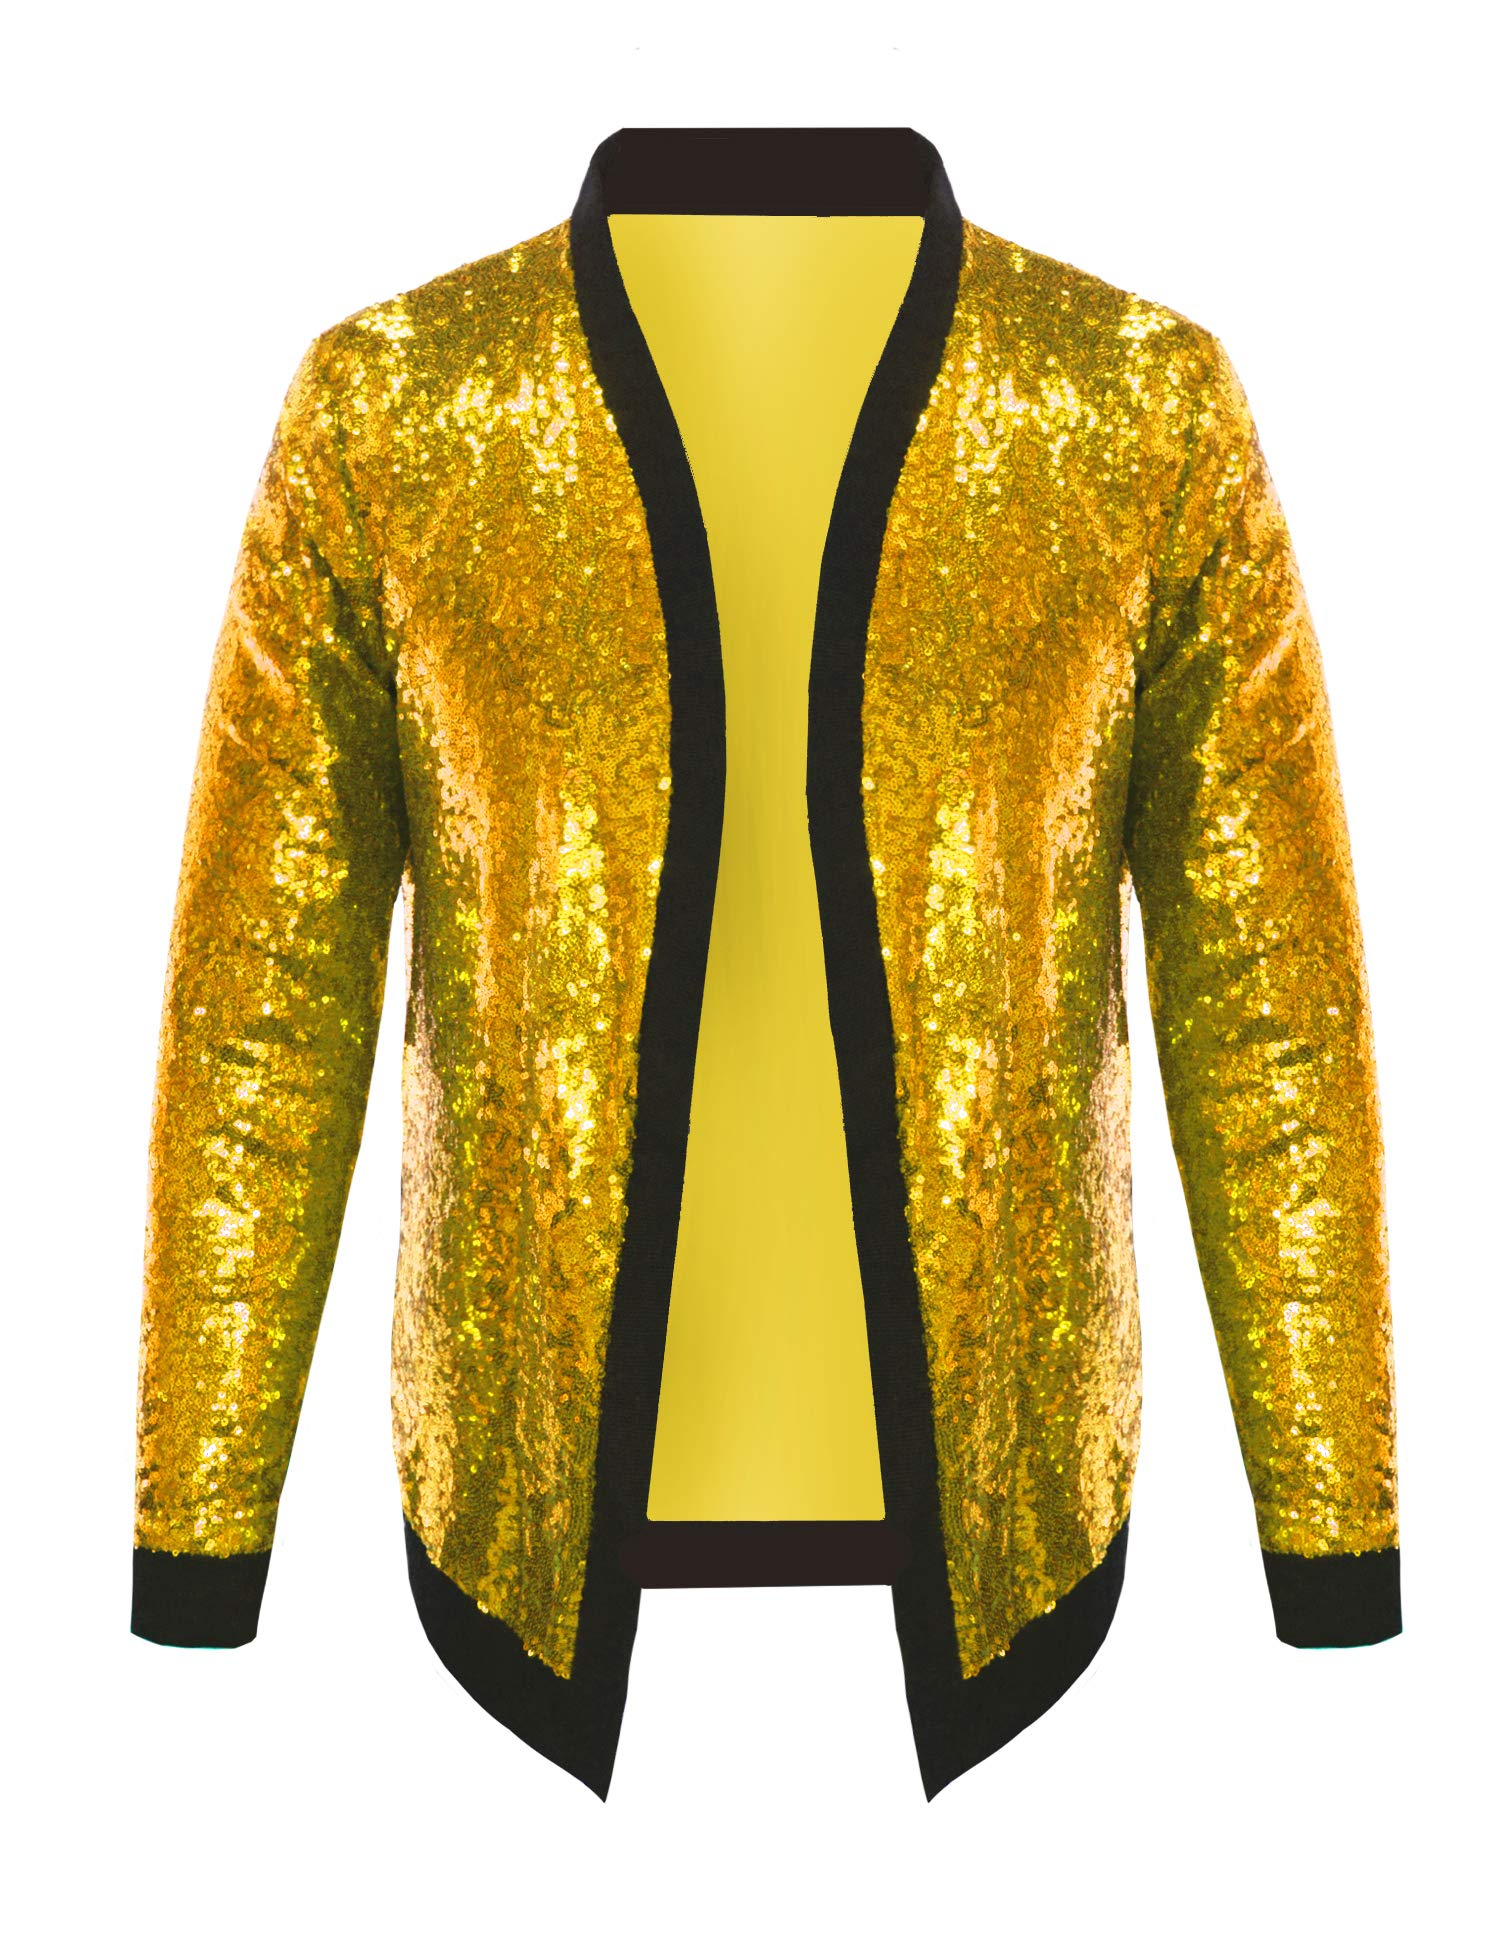 Pacinoble Men's All Over Sequin Jacket Long Sleeve Varsity Bling Bling Bomber Metallic Nightclub Styles Cardigan (Gold L) by Pacinoble